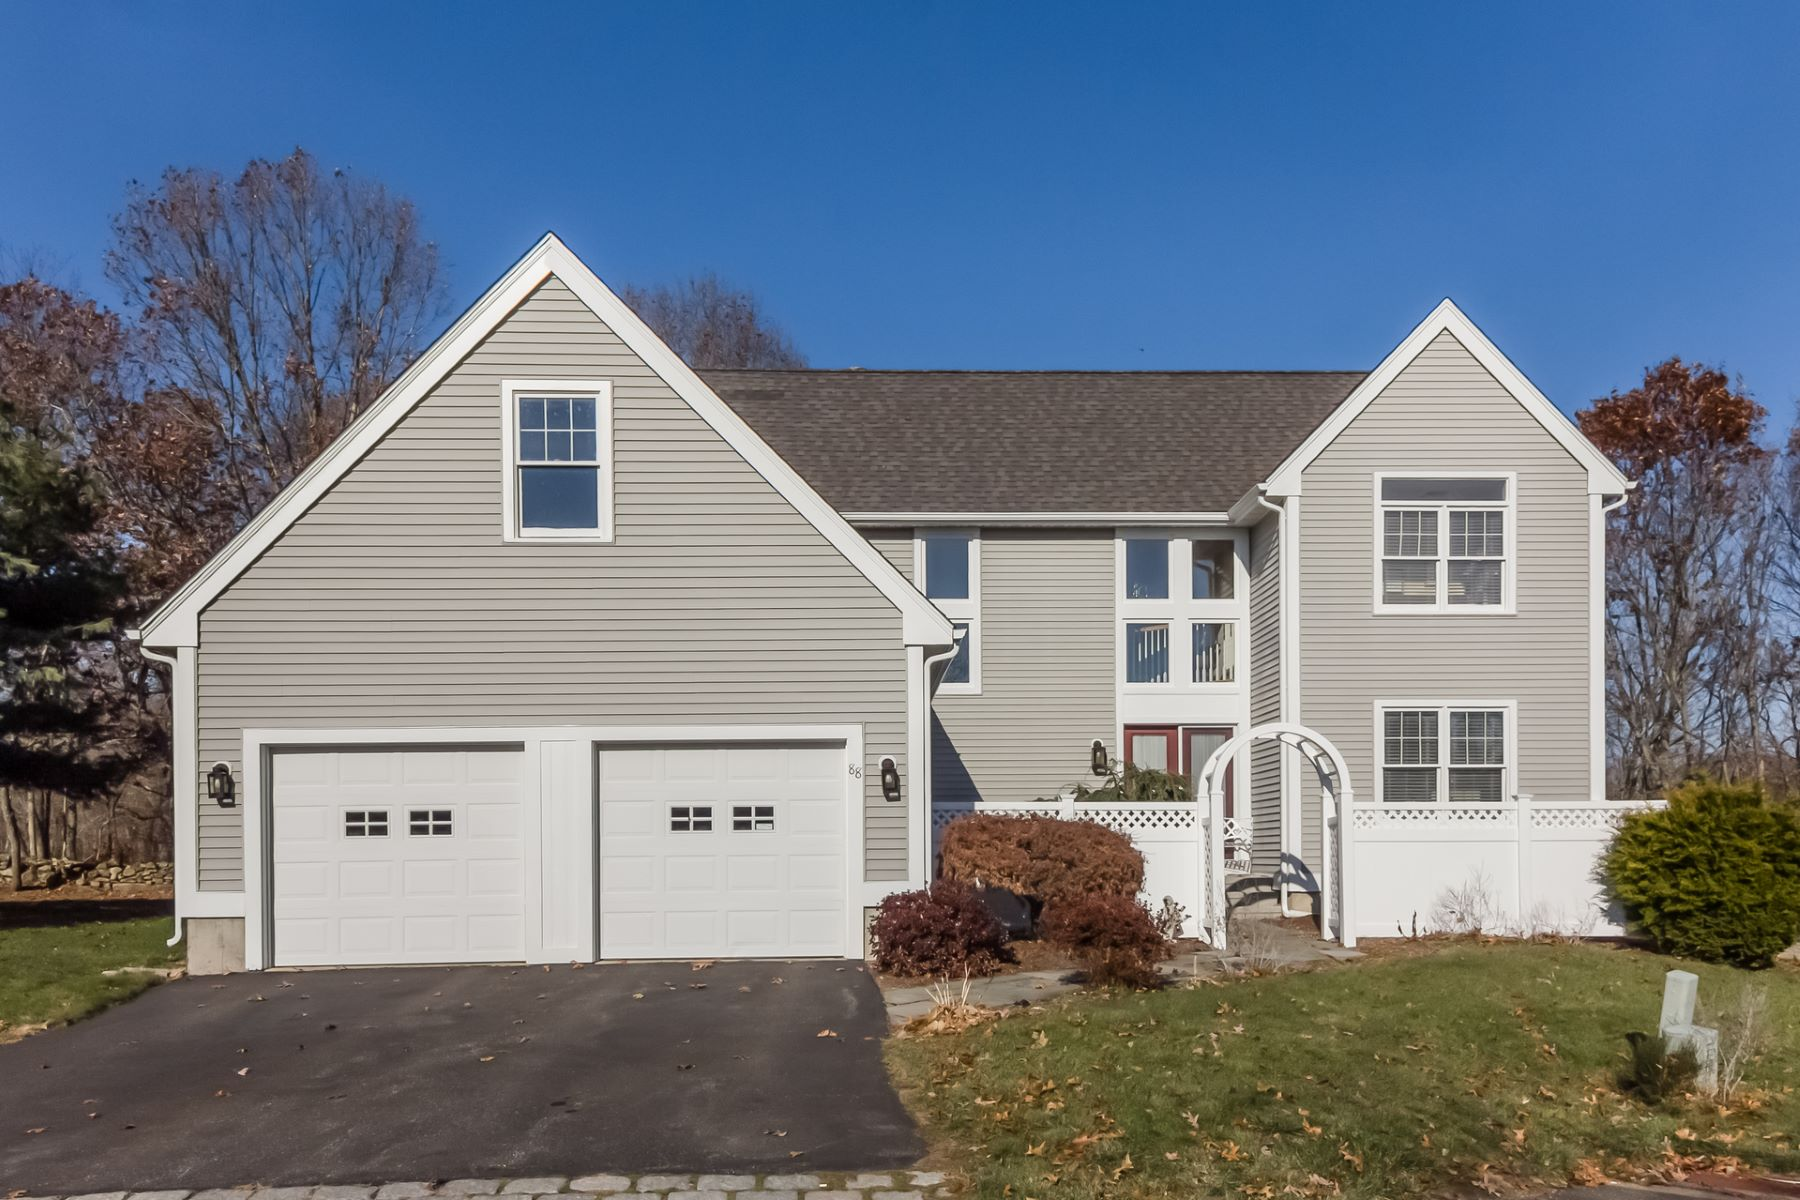 Single Family Home for Sale at Easy Living 88 Sconset Lane, Guilford, Connecticut, 06437 United States